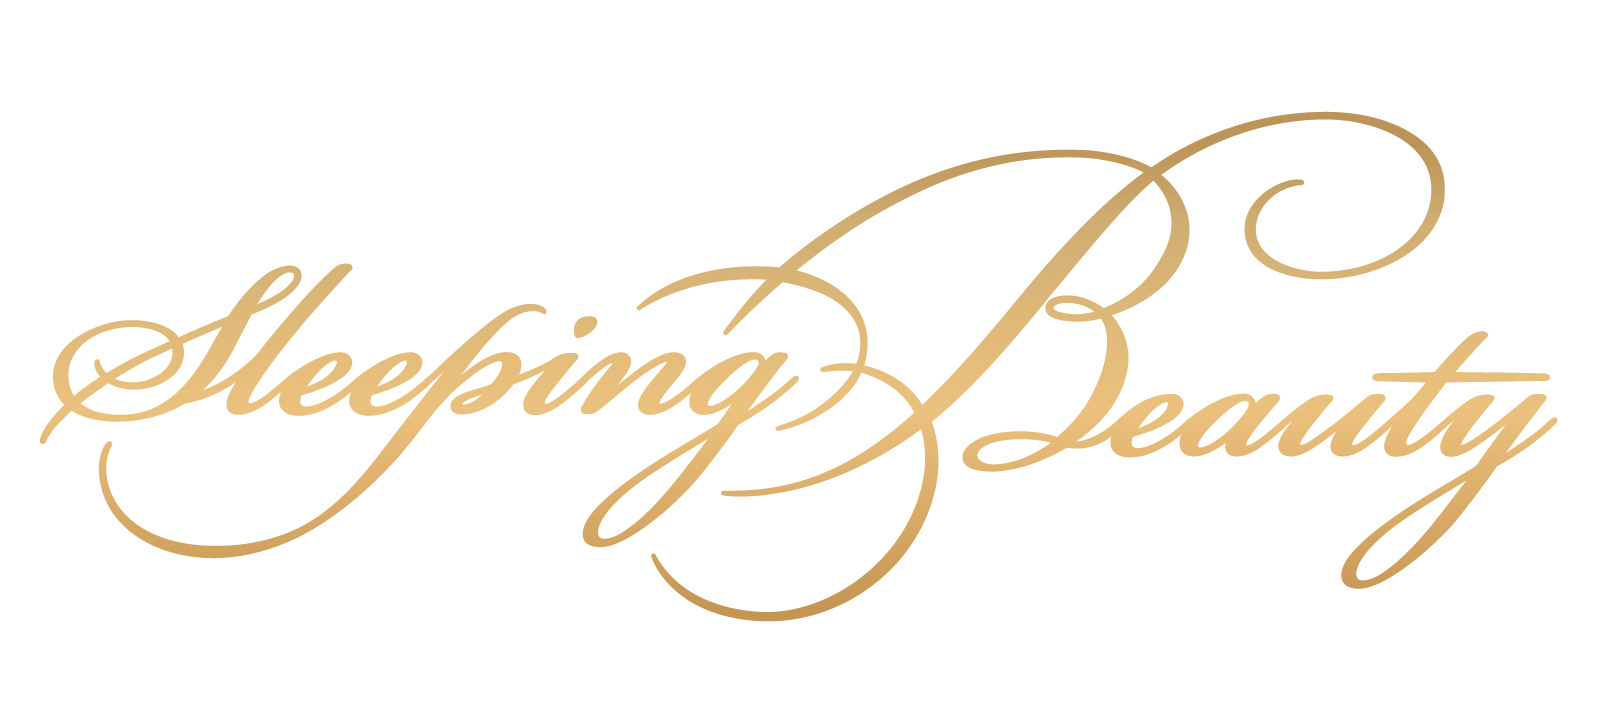 Sleeping Beauty logo